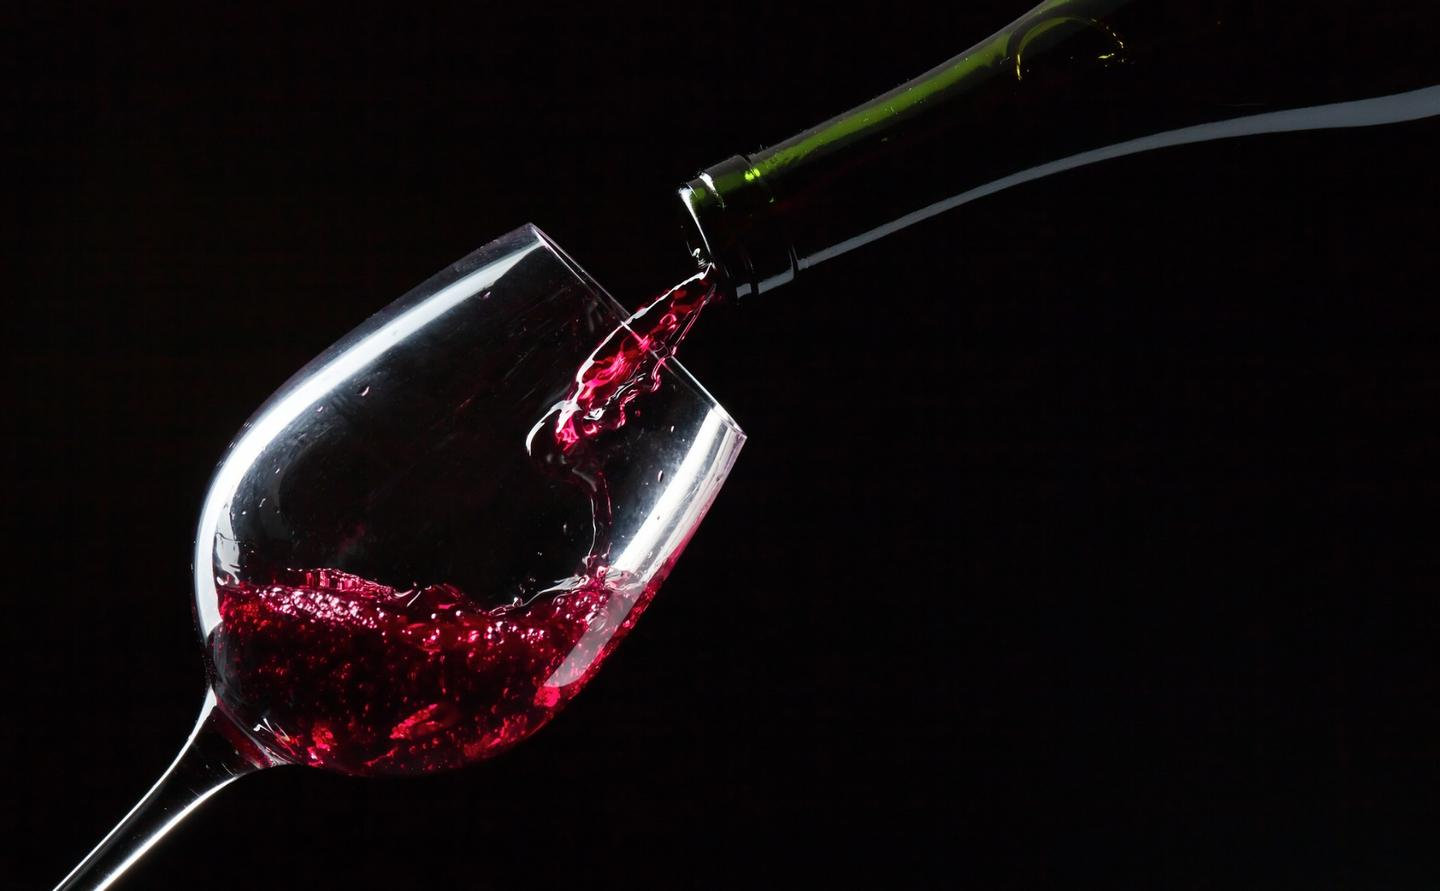 A new study has found that compounds in red wine might help fight the bacteria that cause tooth decay and gum disease